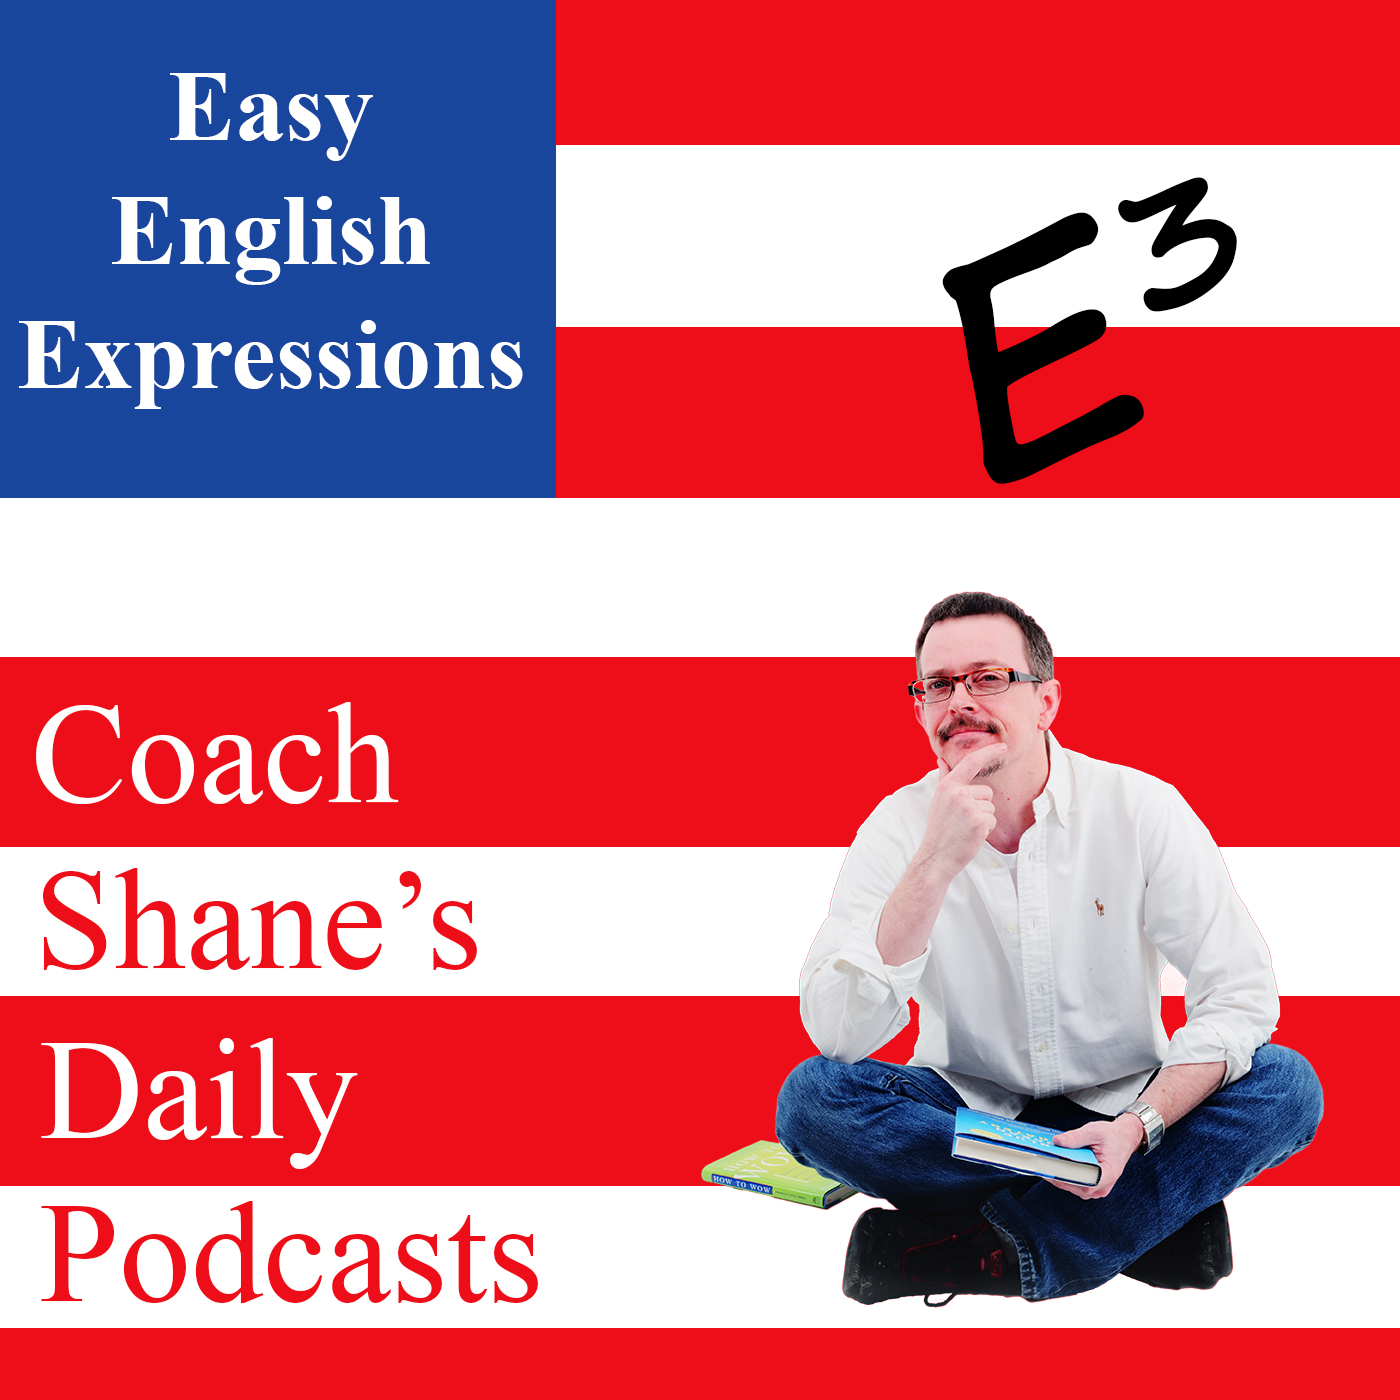 64 Daily Easy English Expression PODCAST—to get the nod